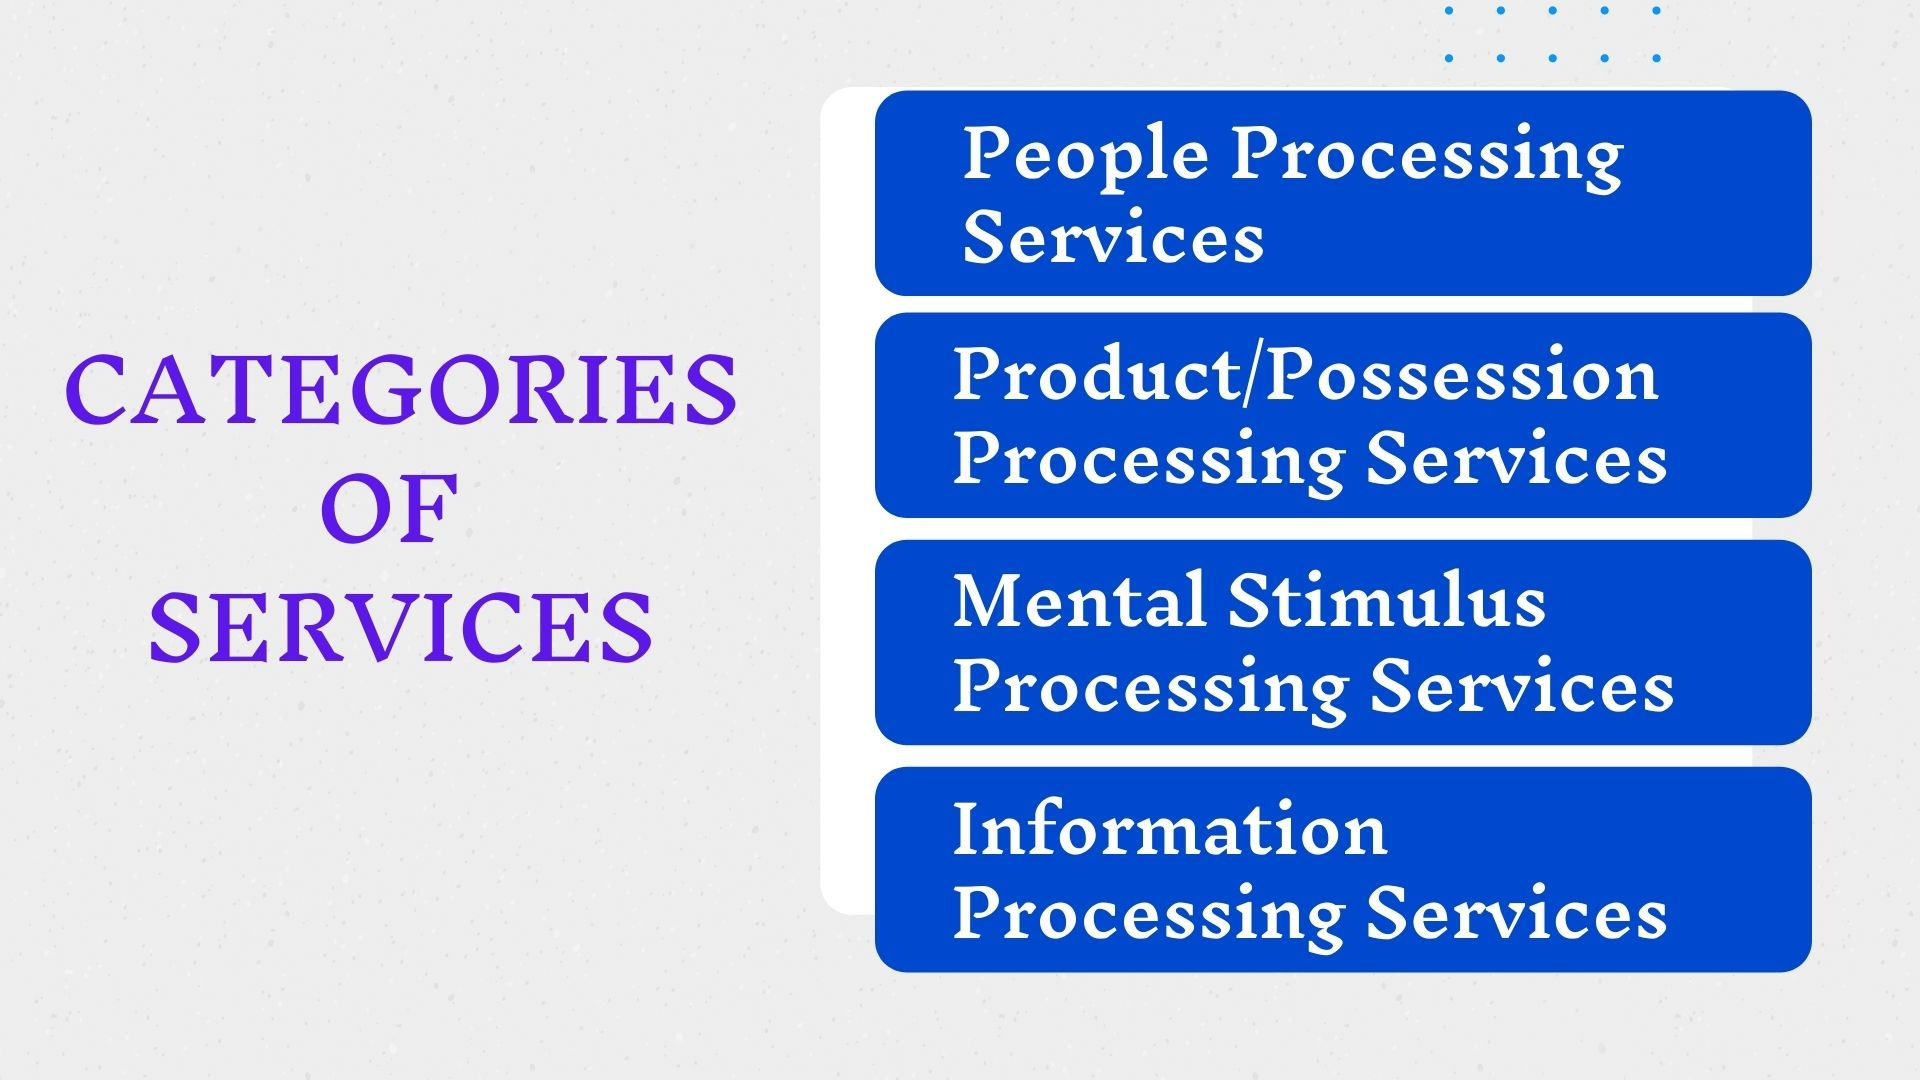 Categories of Services in Service Marketing